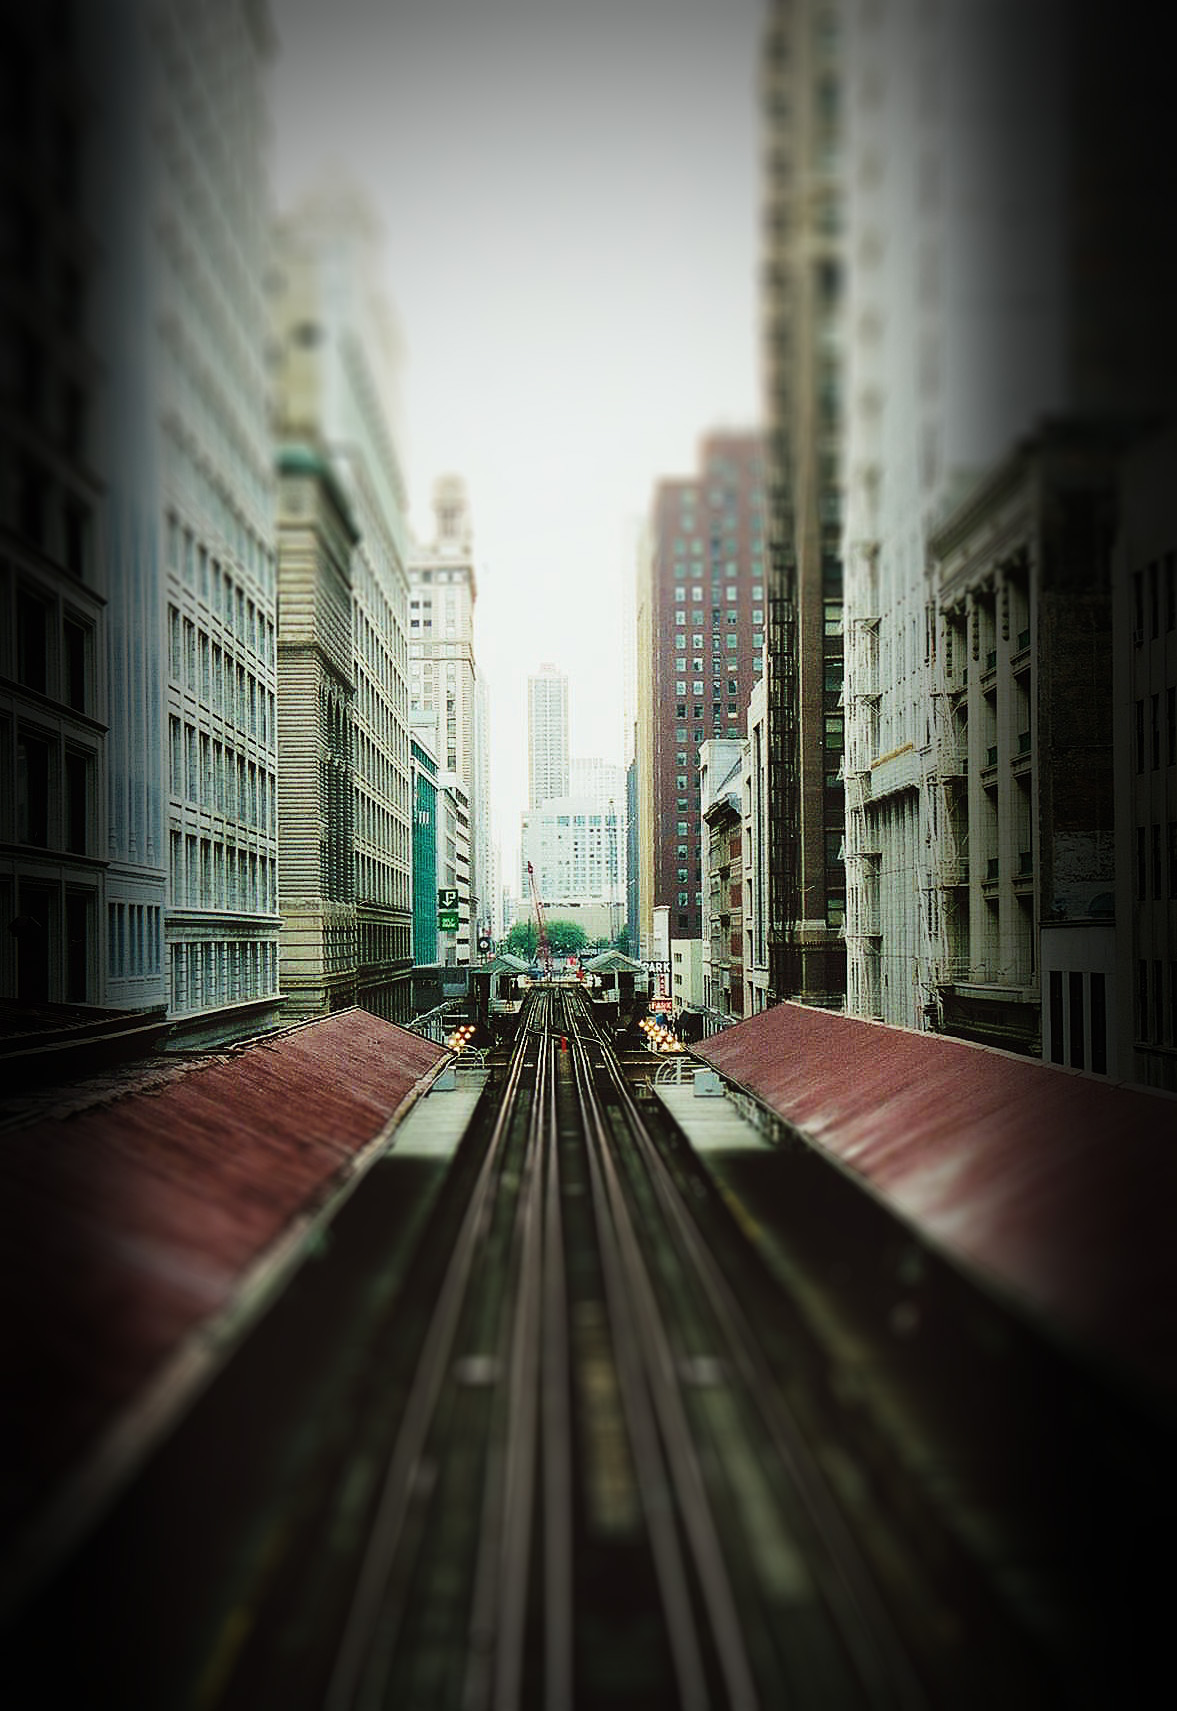 chicago-train-track